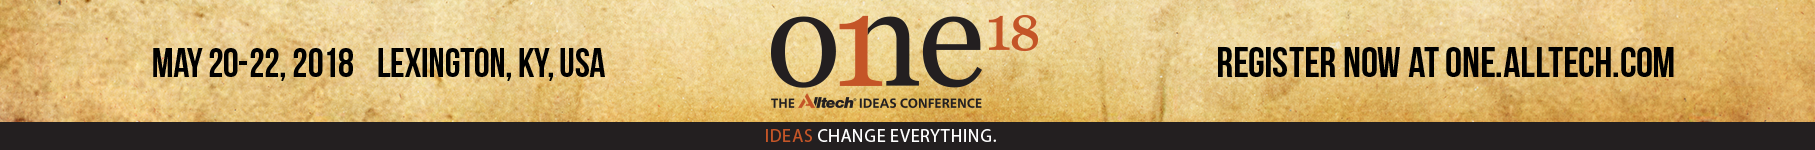 ONE18_IdeaLabBanner1815x150-2.png